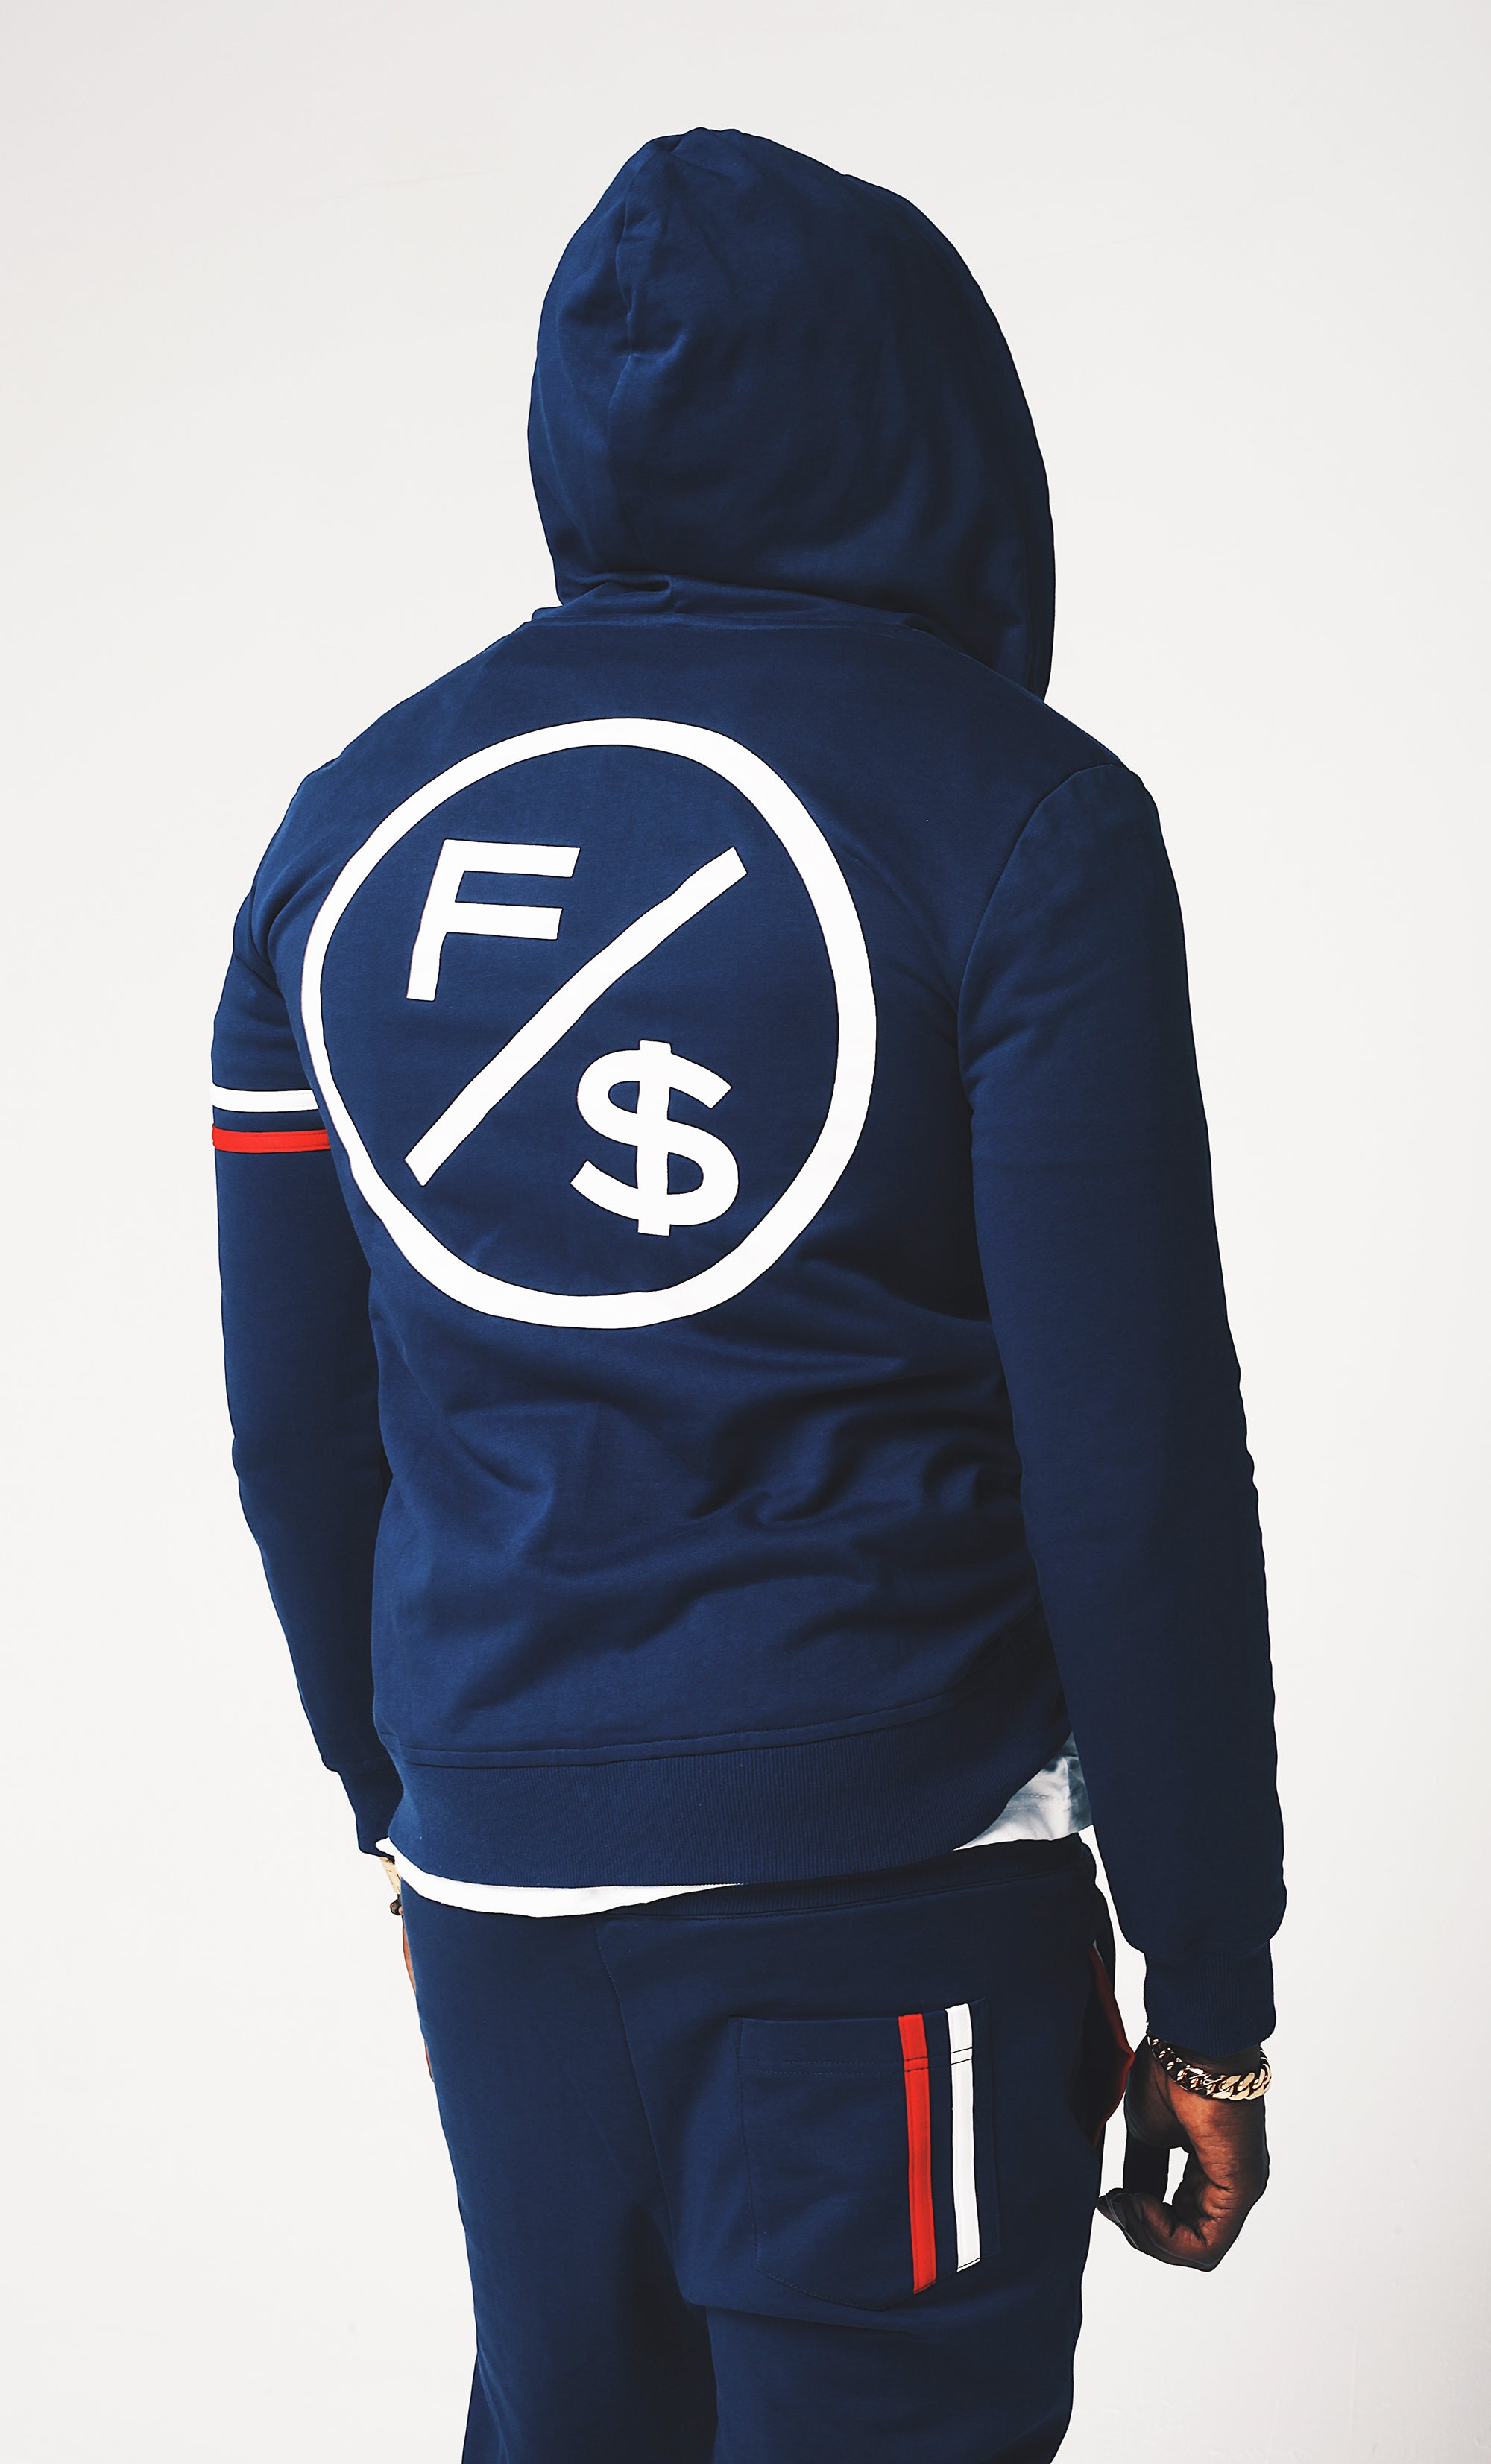 2 Band$ Sweat Suit Hoody (Top)